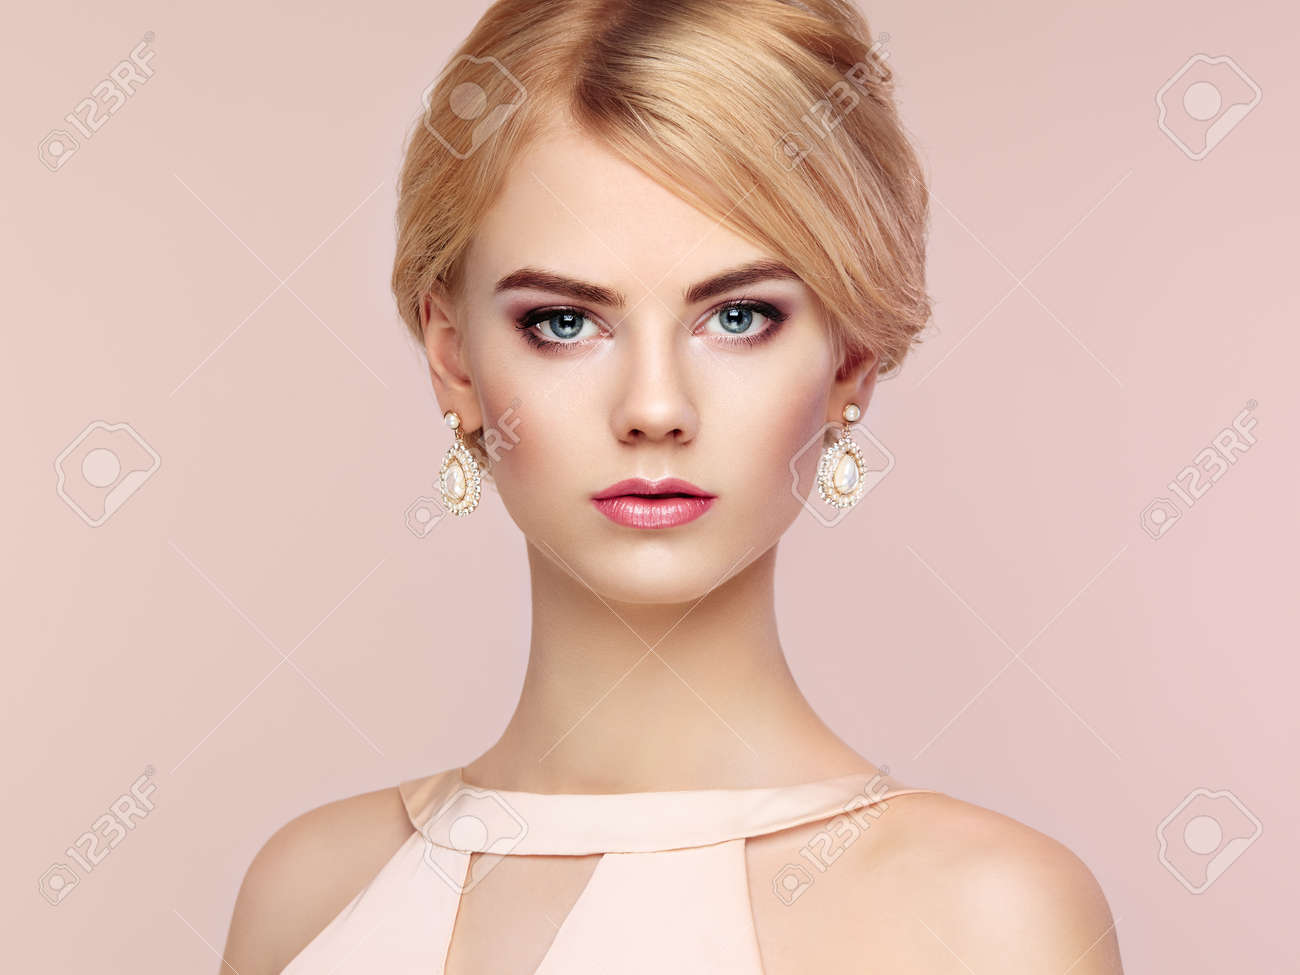 Portrait of beautiful sensual woman with elegant hairstyle. Perfect makeup. Blonde girl. Fashion photo. Jewelry and dress - 47595985